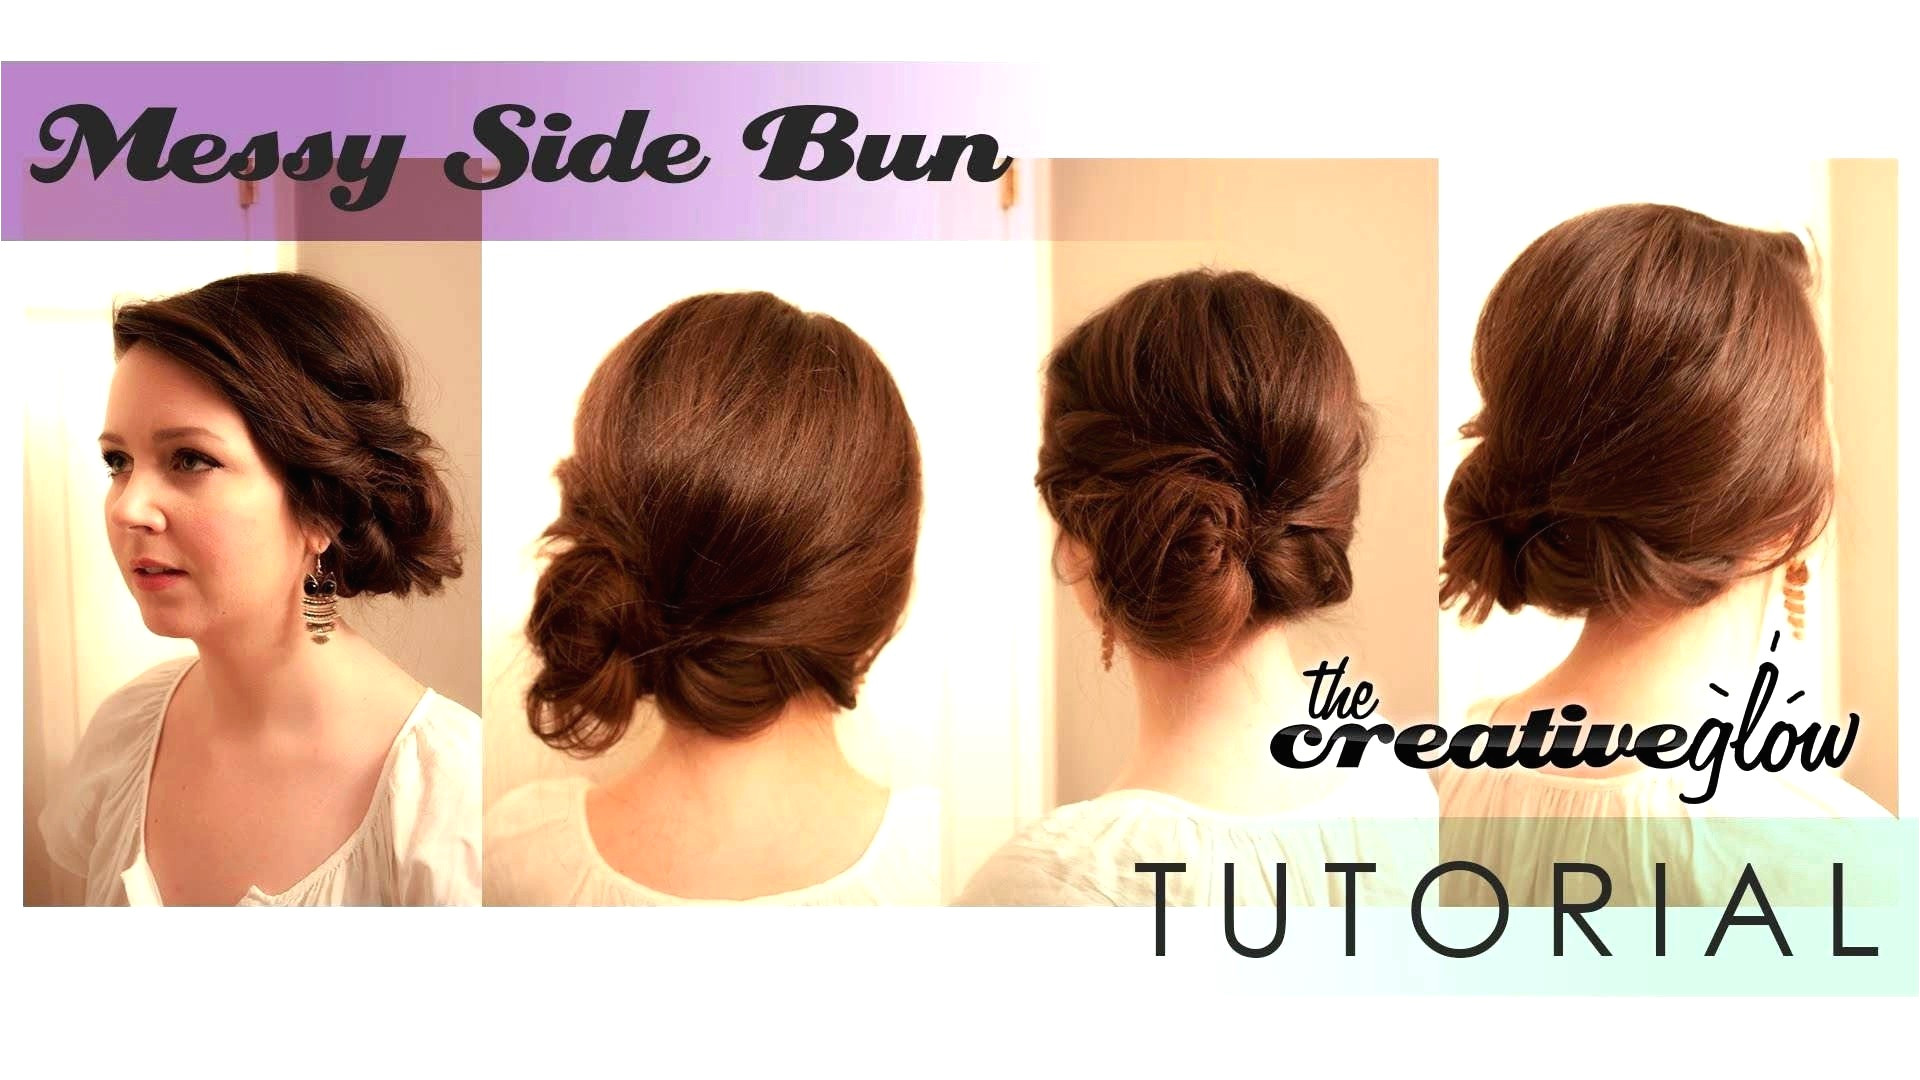 Cute Girls Hairstyles Buns New Cool American Girl Hairstyles Cute Girls Hairstyles Buns Inspirational Indian